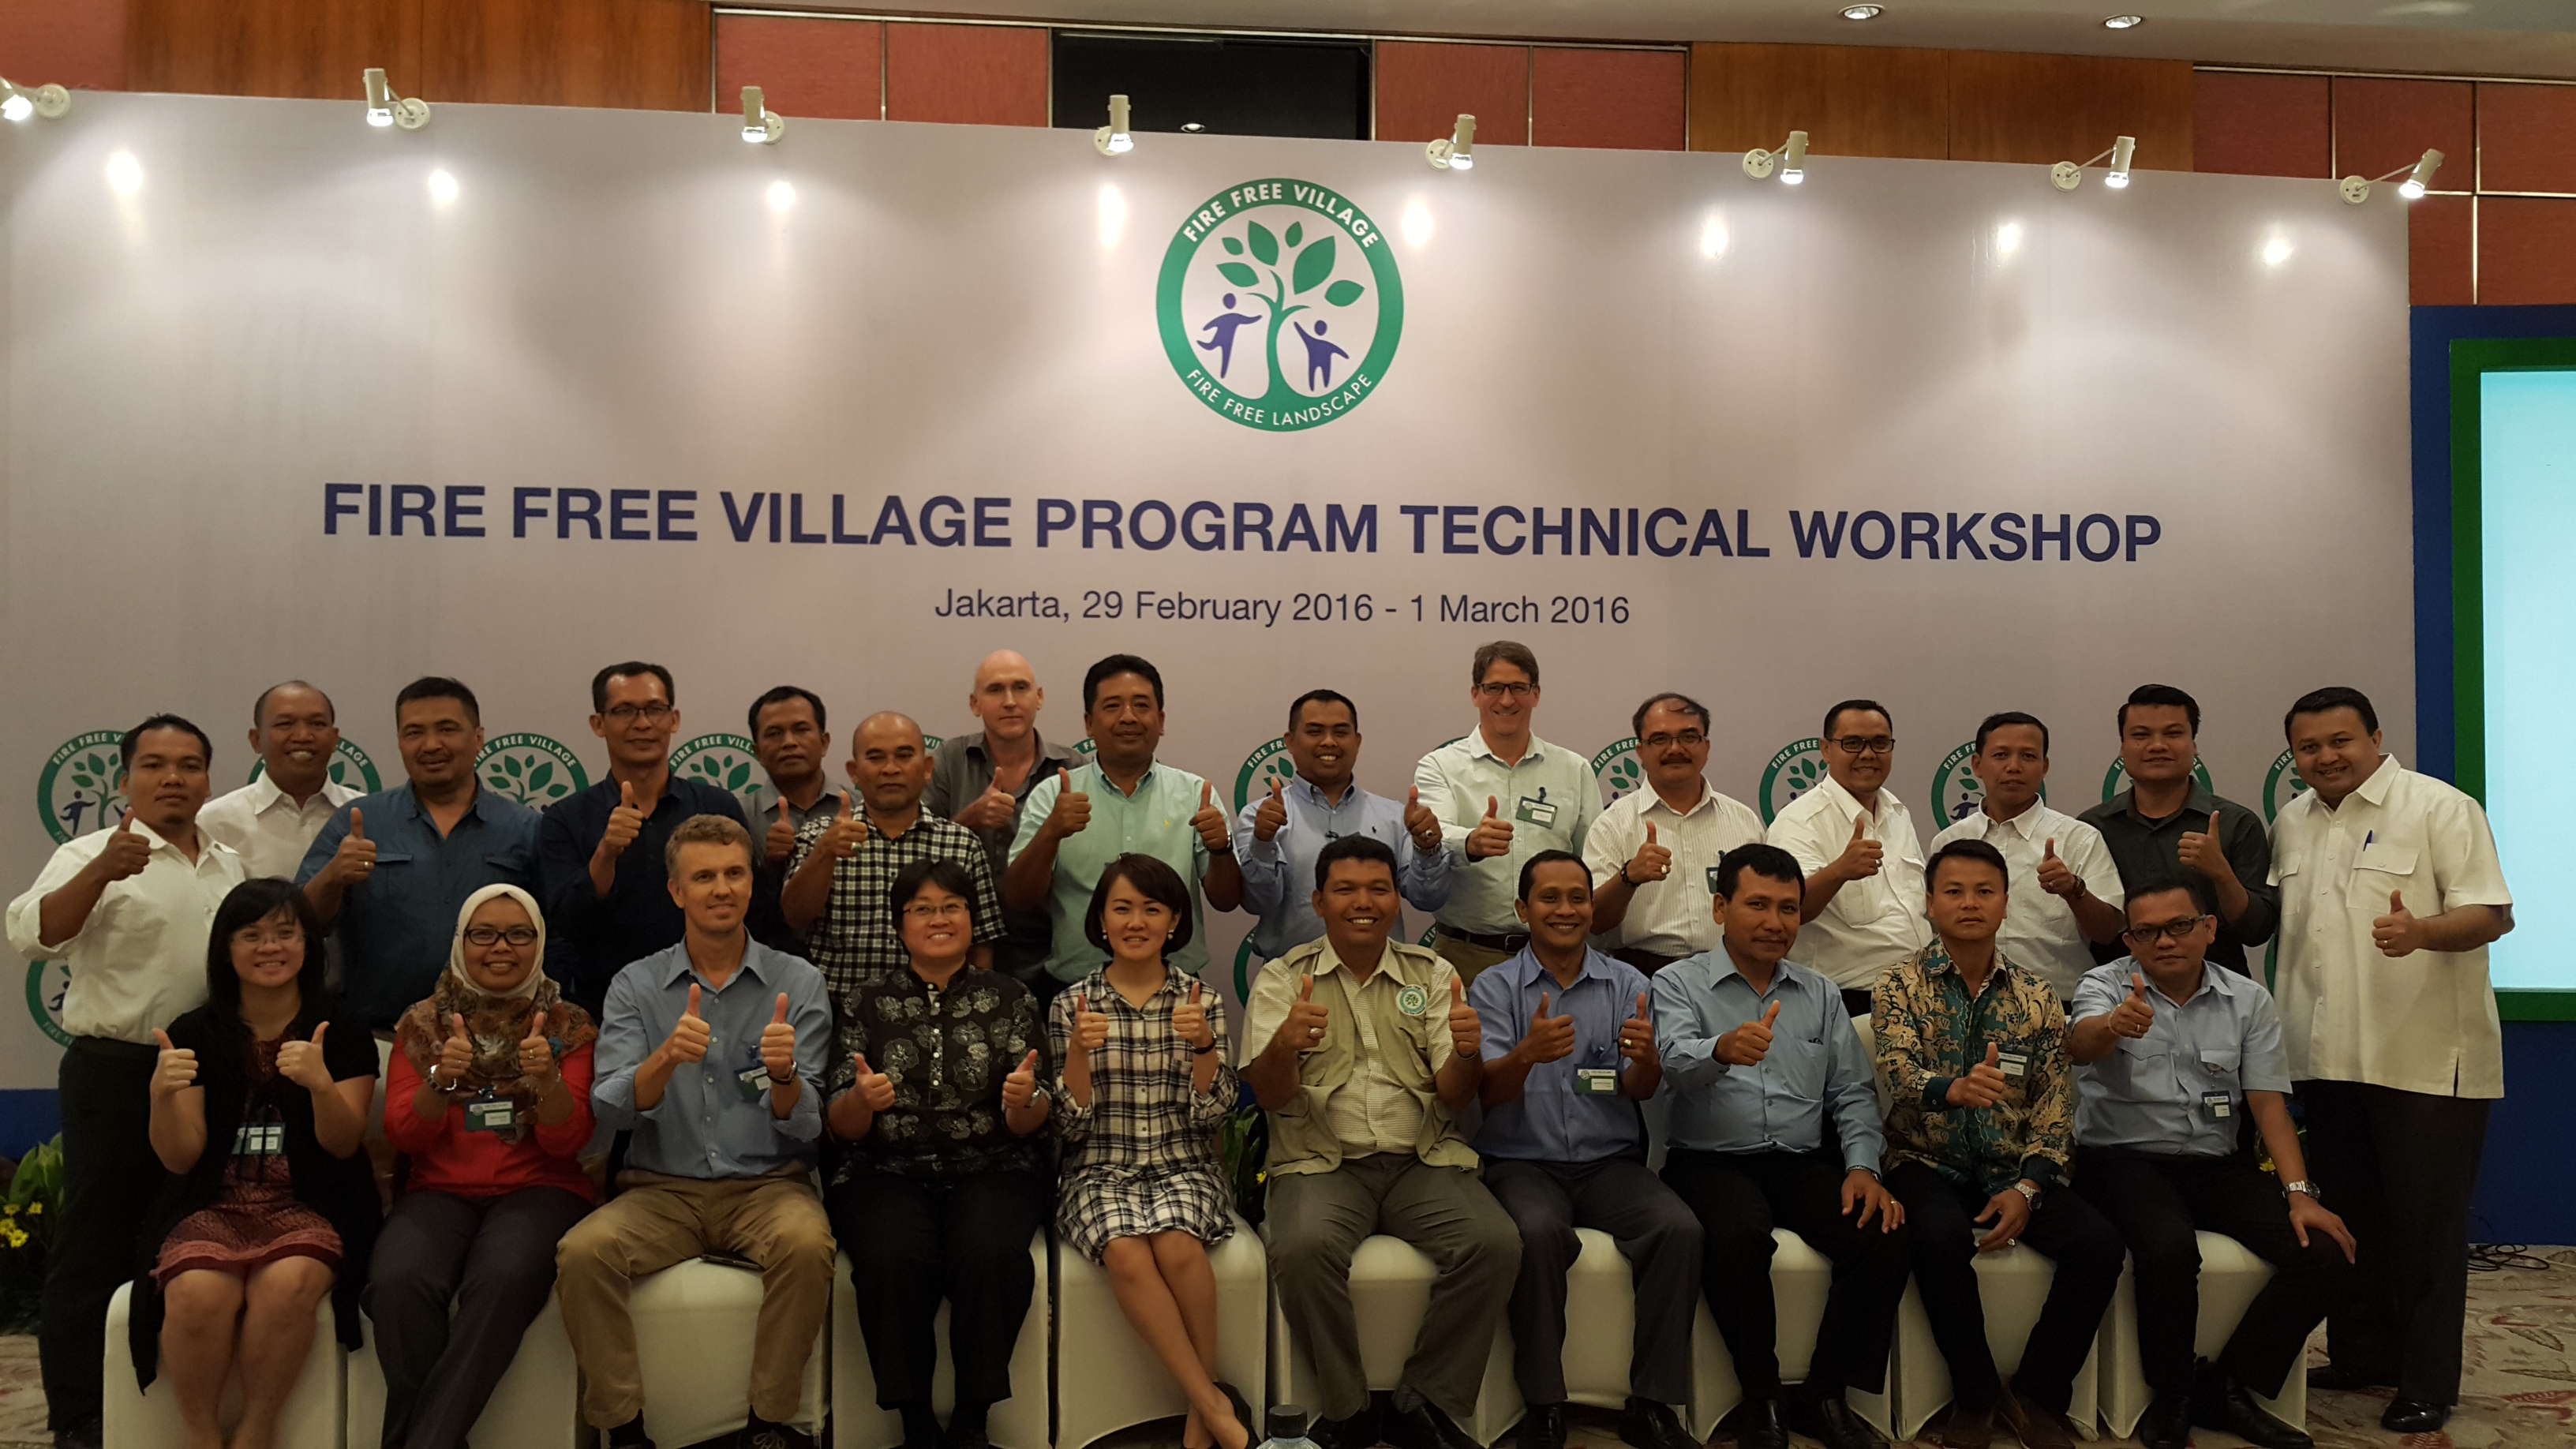 Fire Free Village Technical Workshop